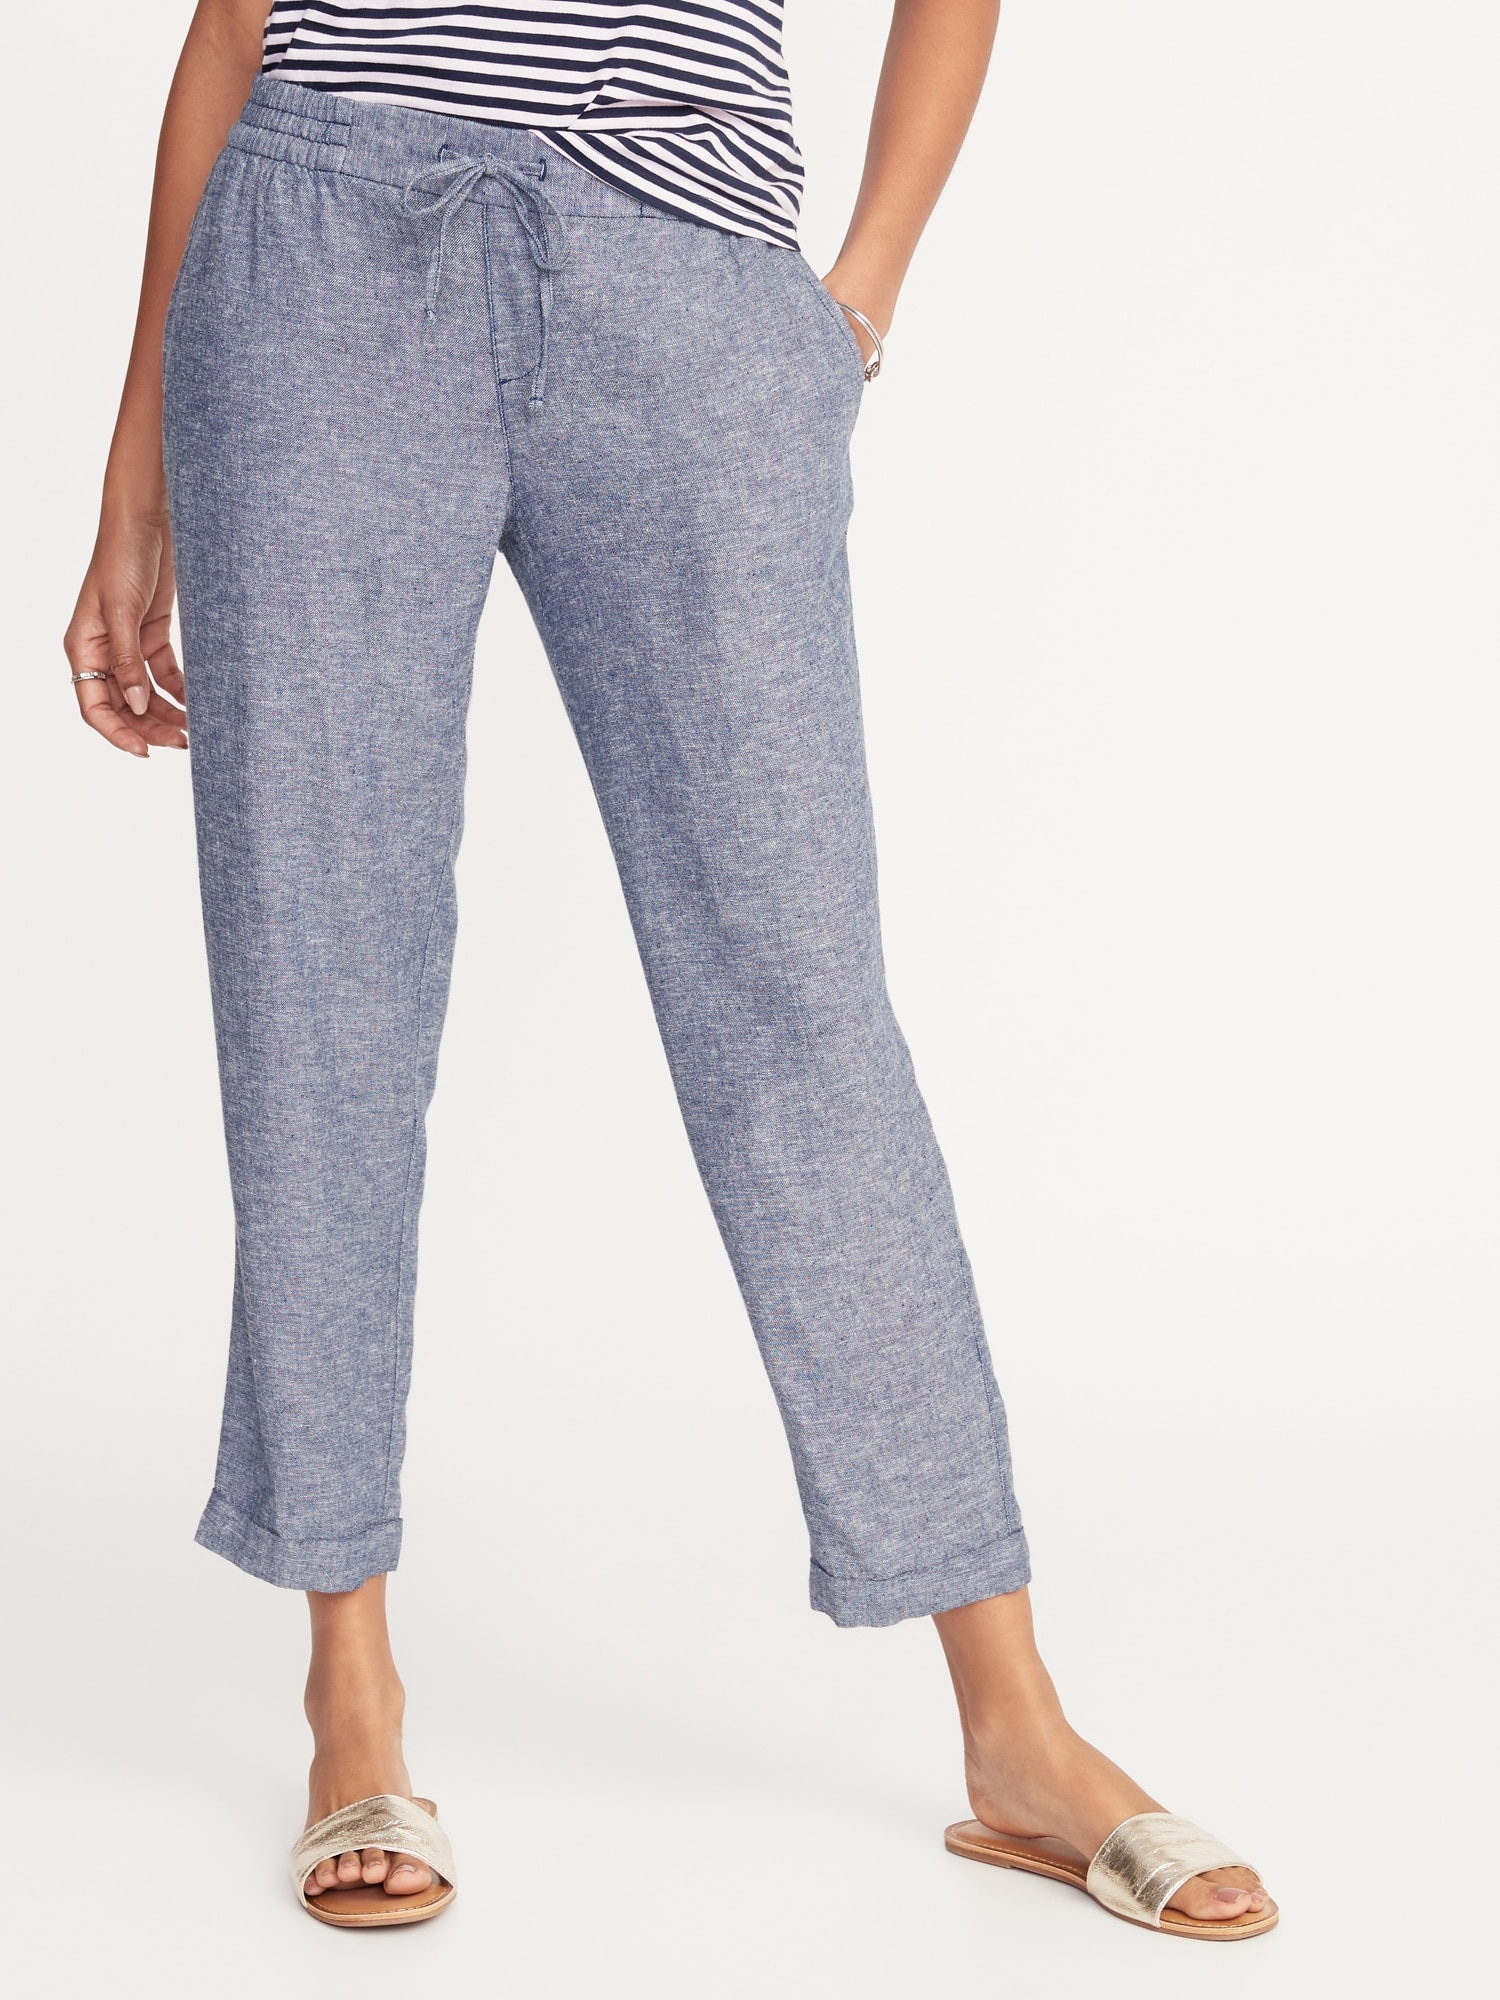 most popular hot sale good service Mid-Rise Linen-Blend Cropped Pants for Women | Old Navy